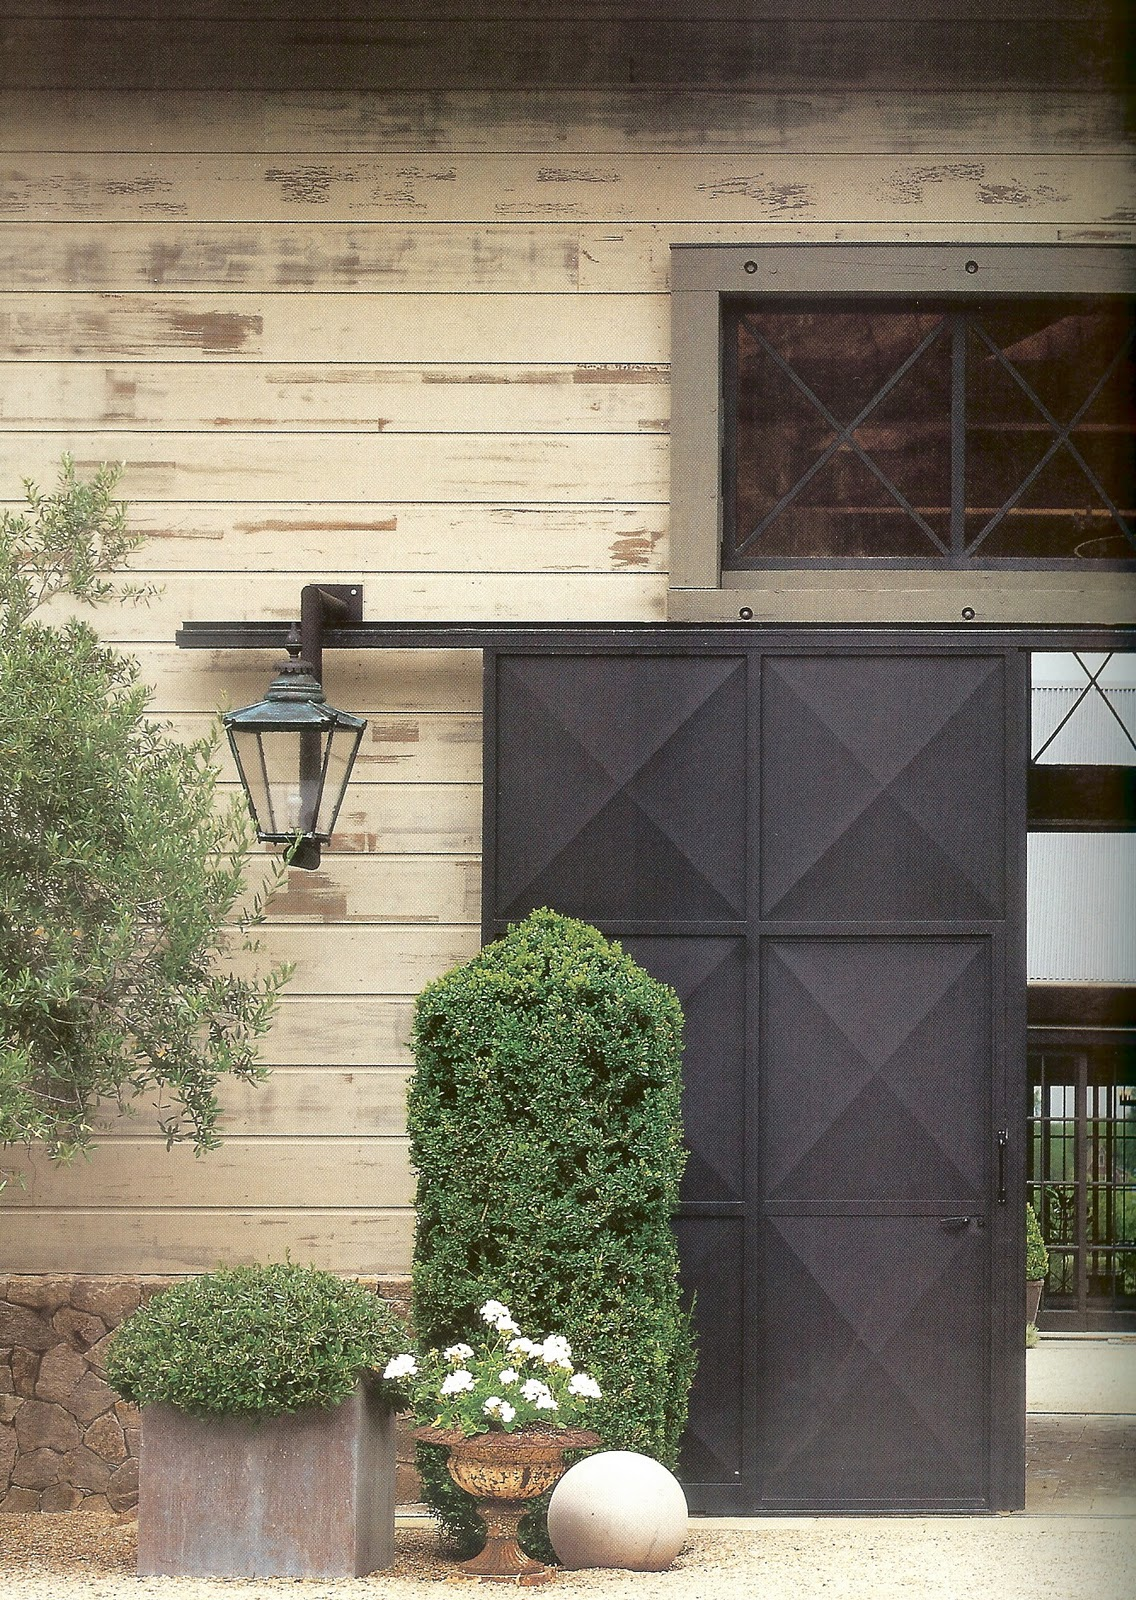 A j barnes classic urns part 2 planters for Exterior barn doors for house